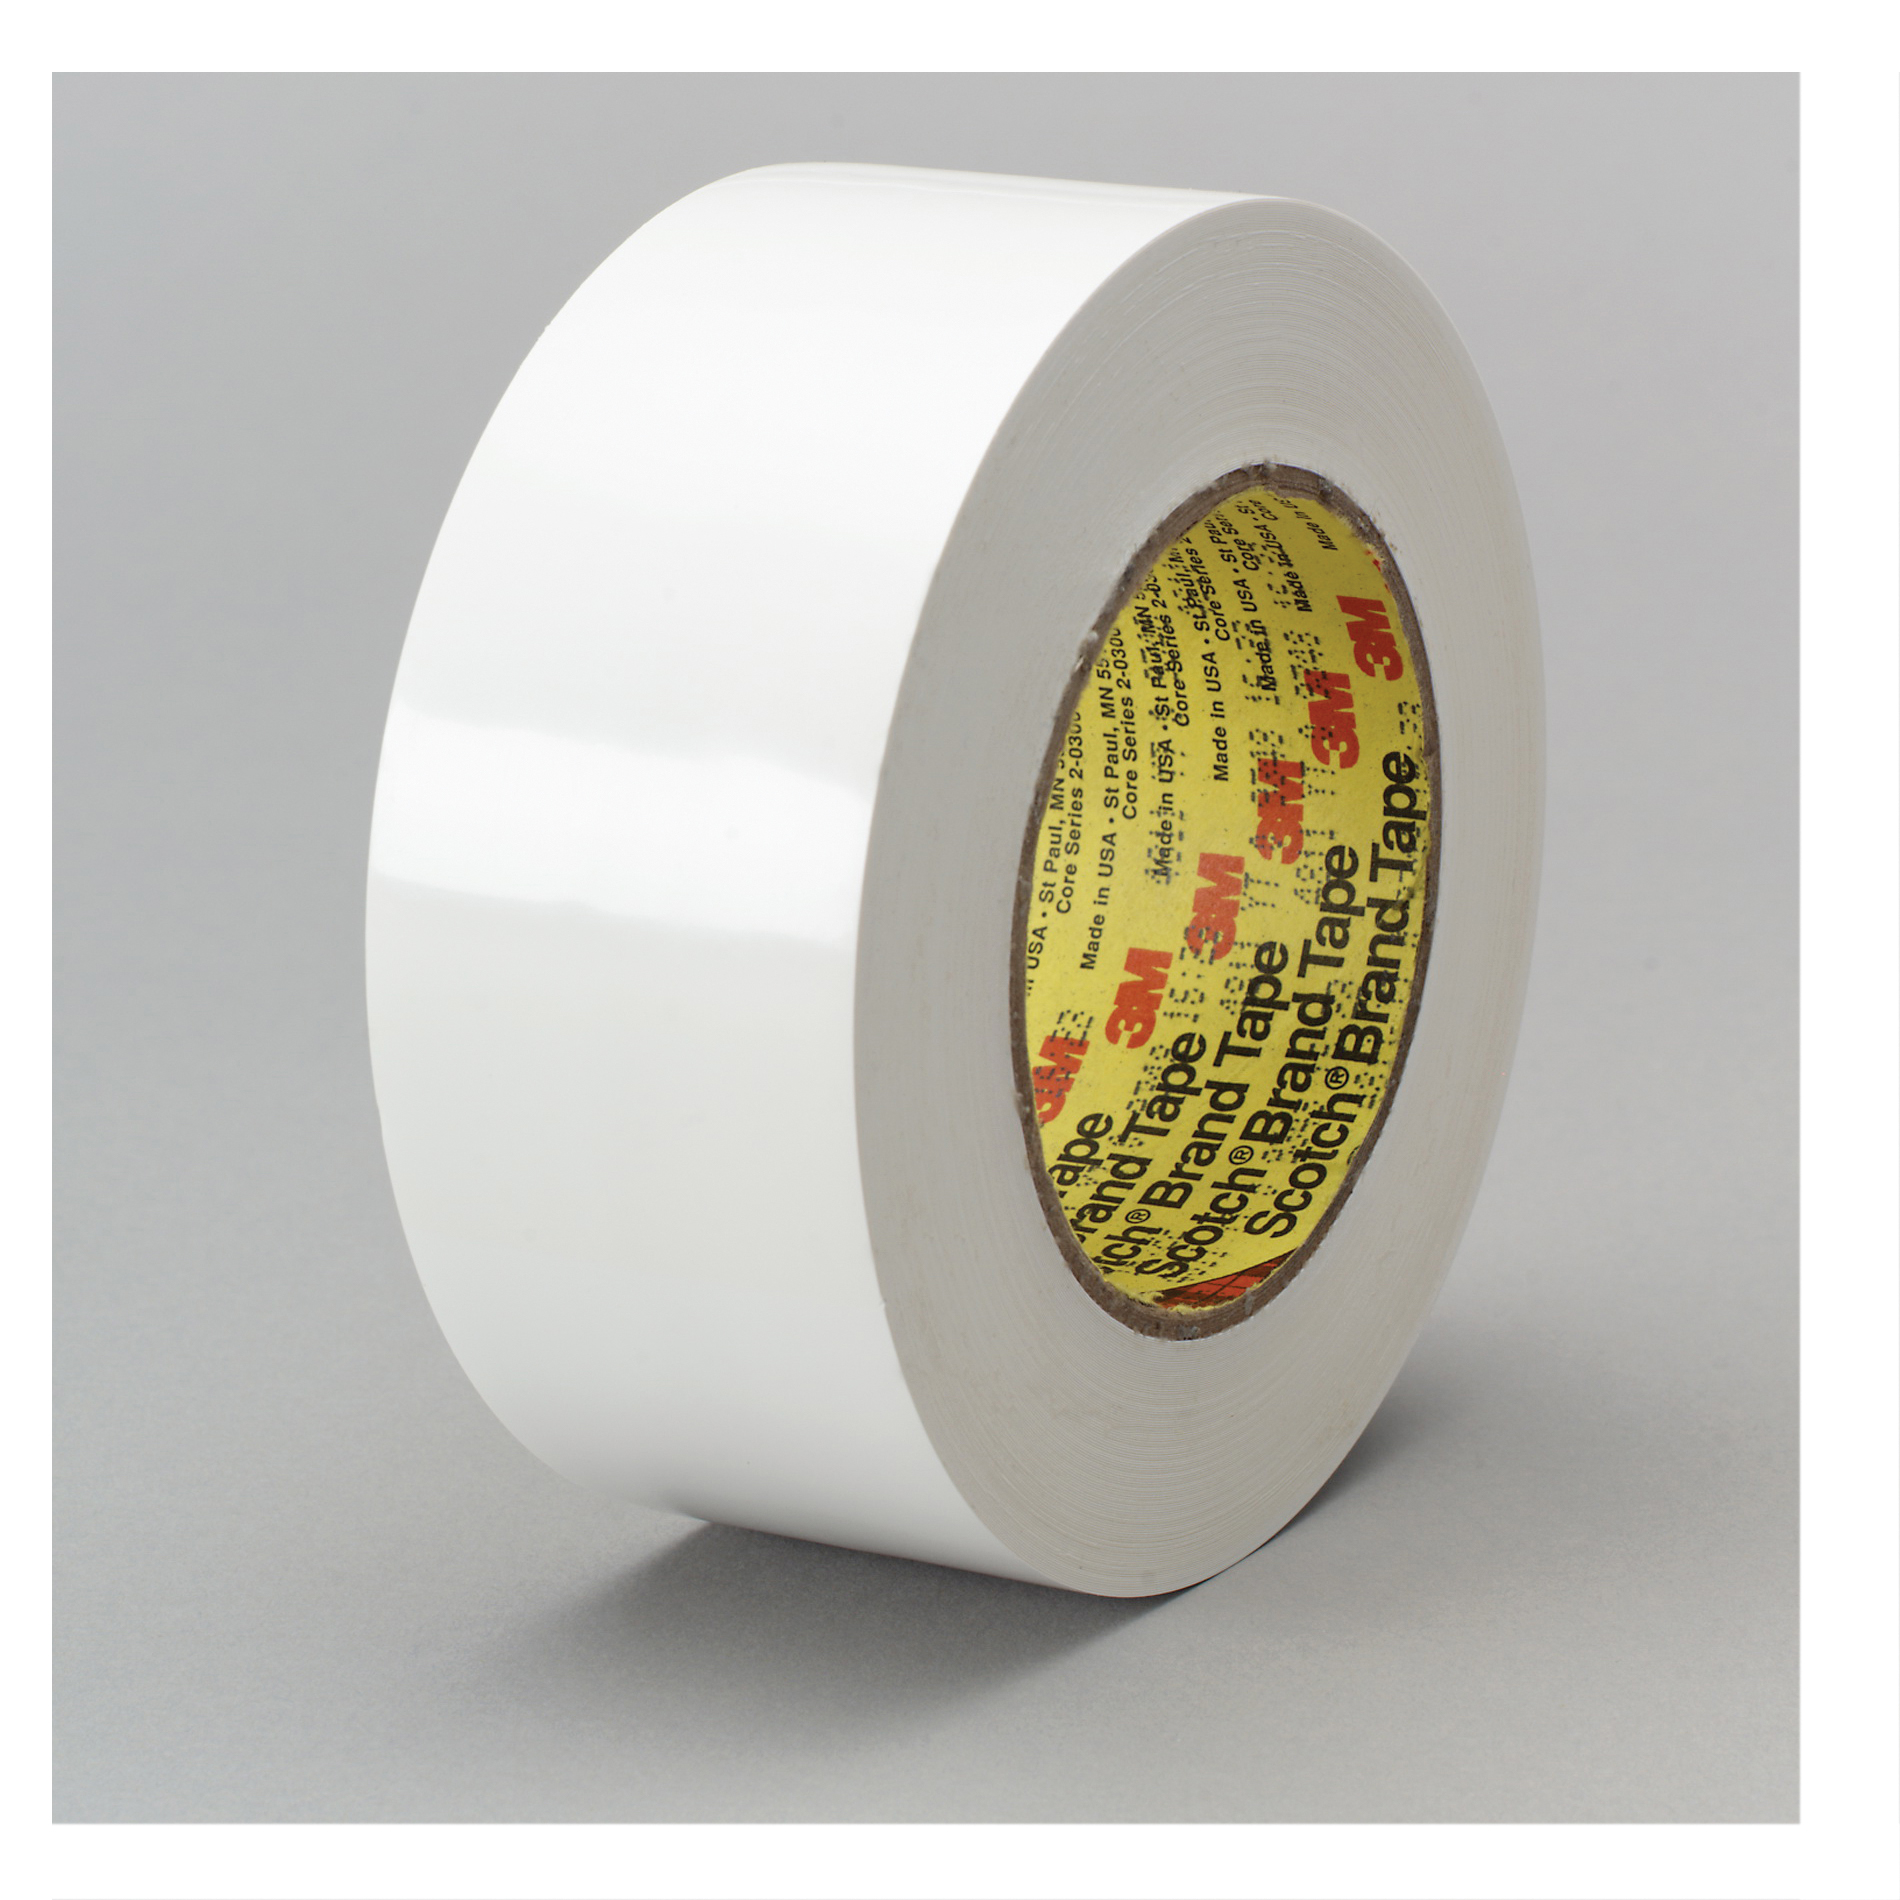 3M™ 021200-42425 Preservation Sealing Tape, 36 yd L x 1 in W, 9.5 mil THK, Rubber Adhesive, Polyethylene Backing, White